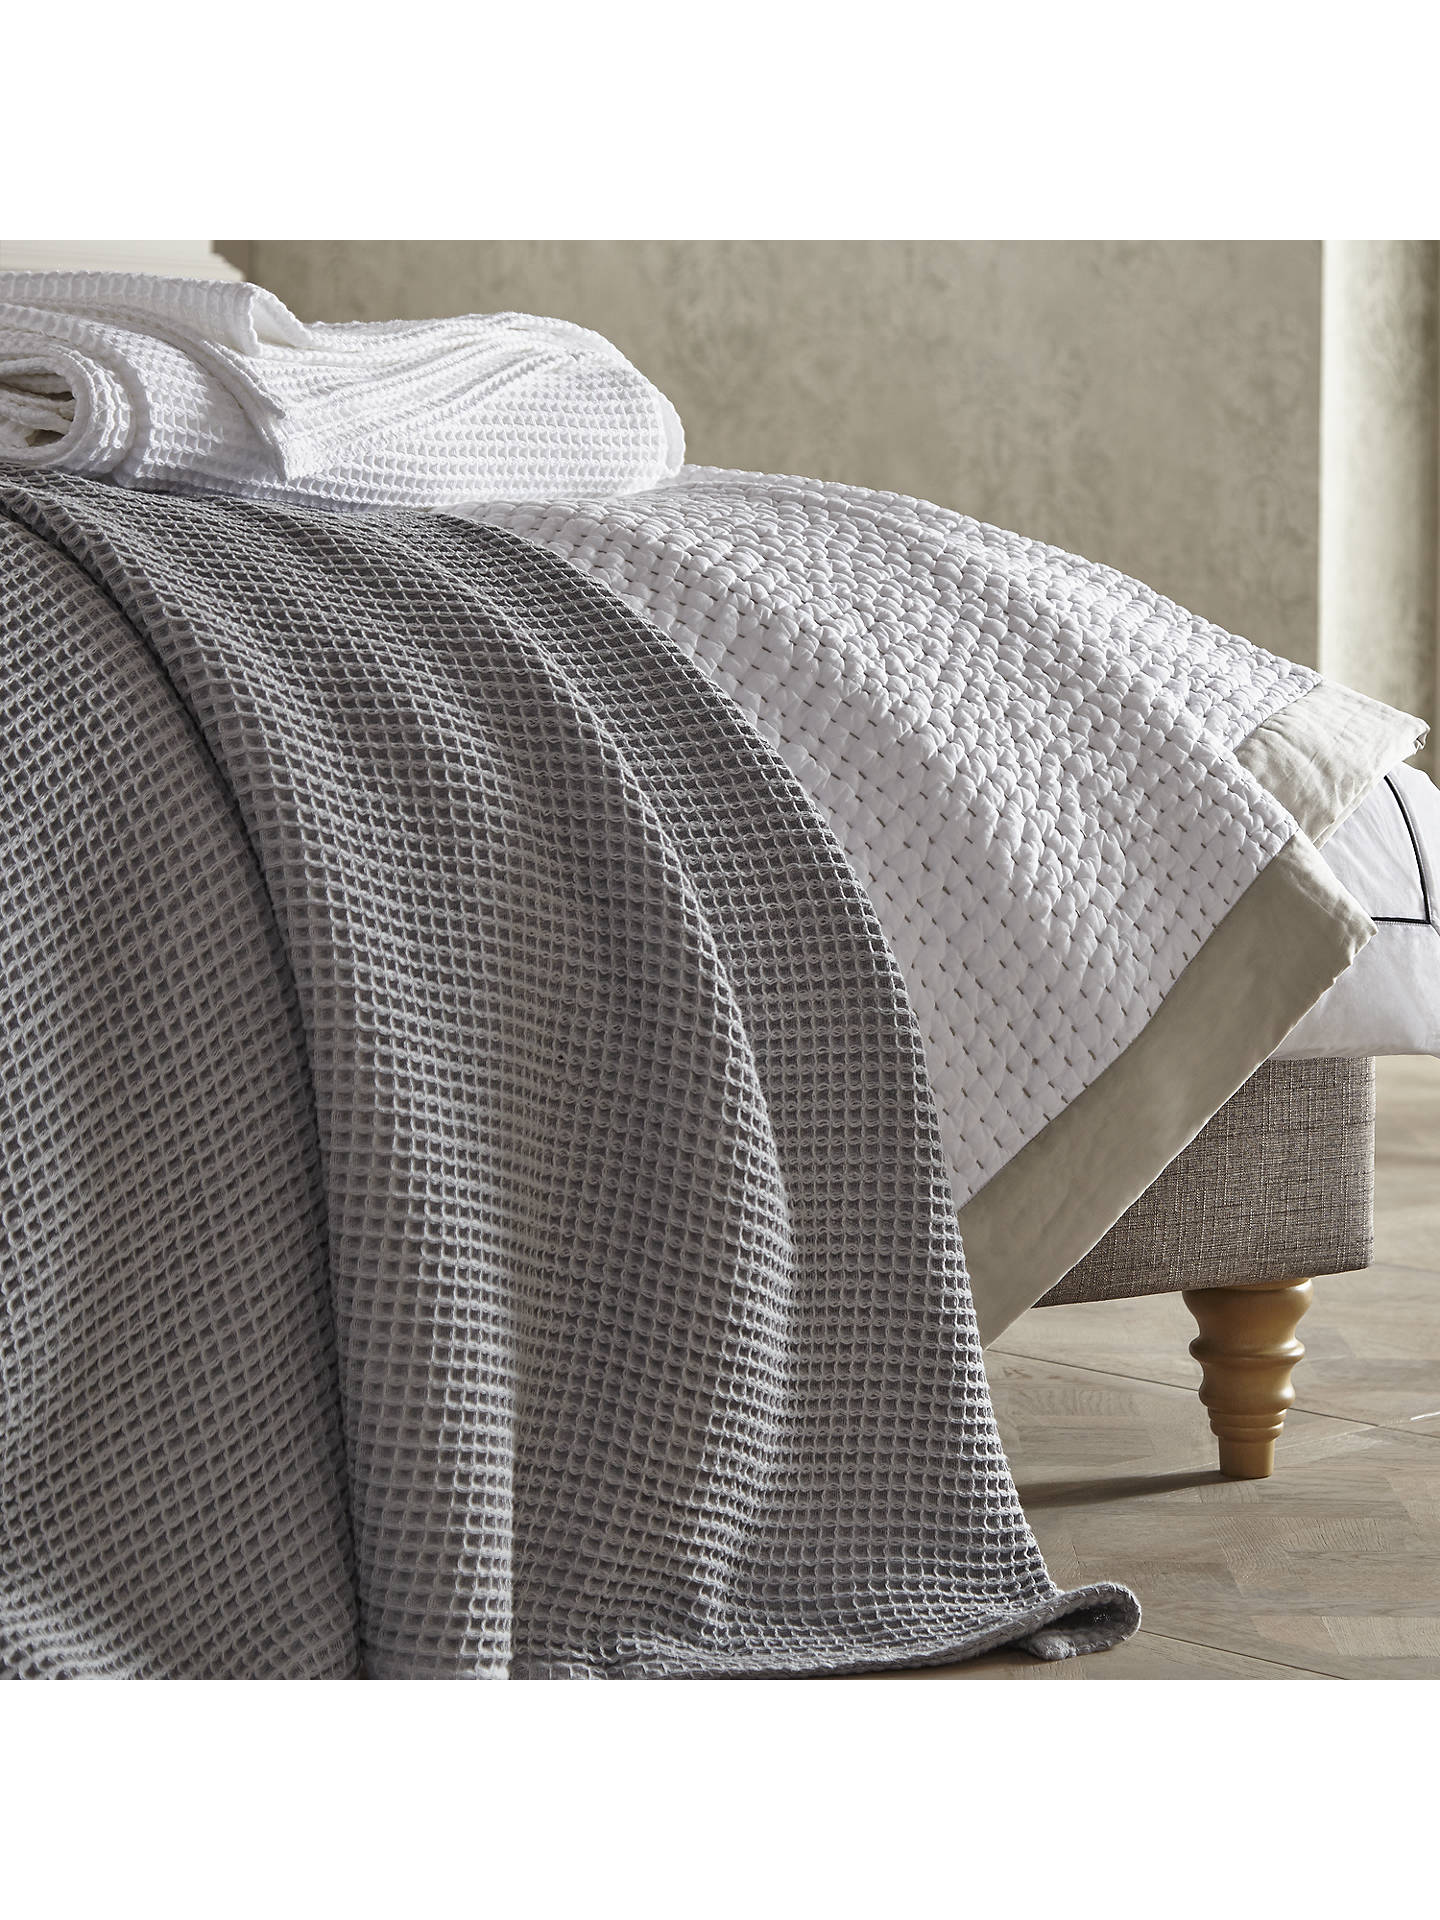 BuyJohn Lewis & Partners Waffle Bedspread, L250 x W230, Pale Grey Online at johnlewis.com